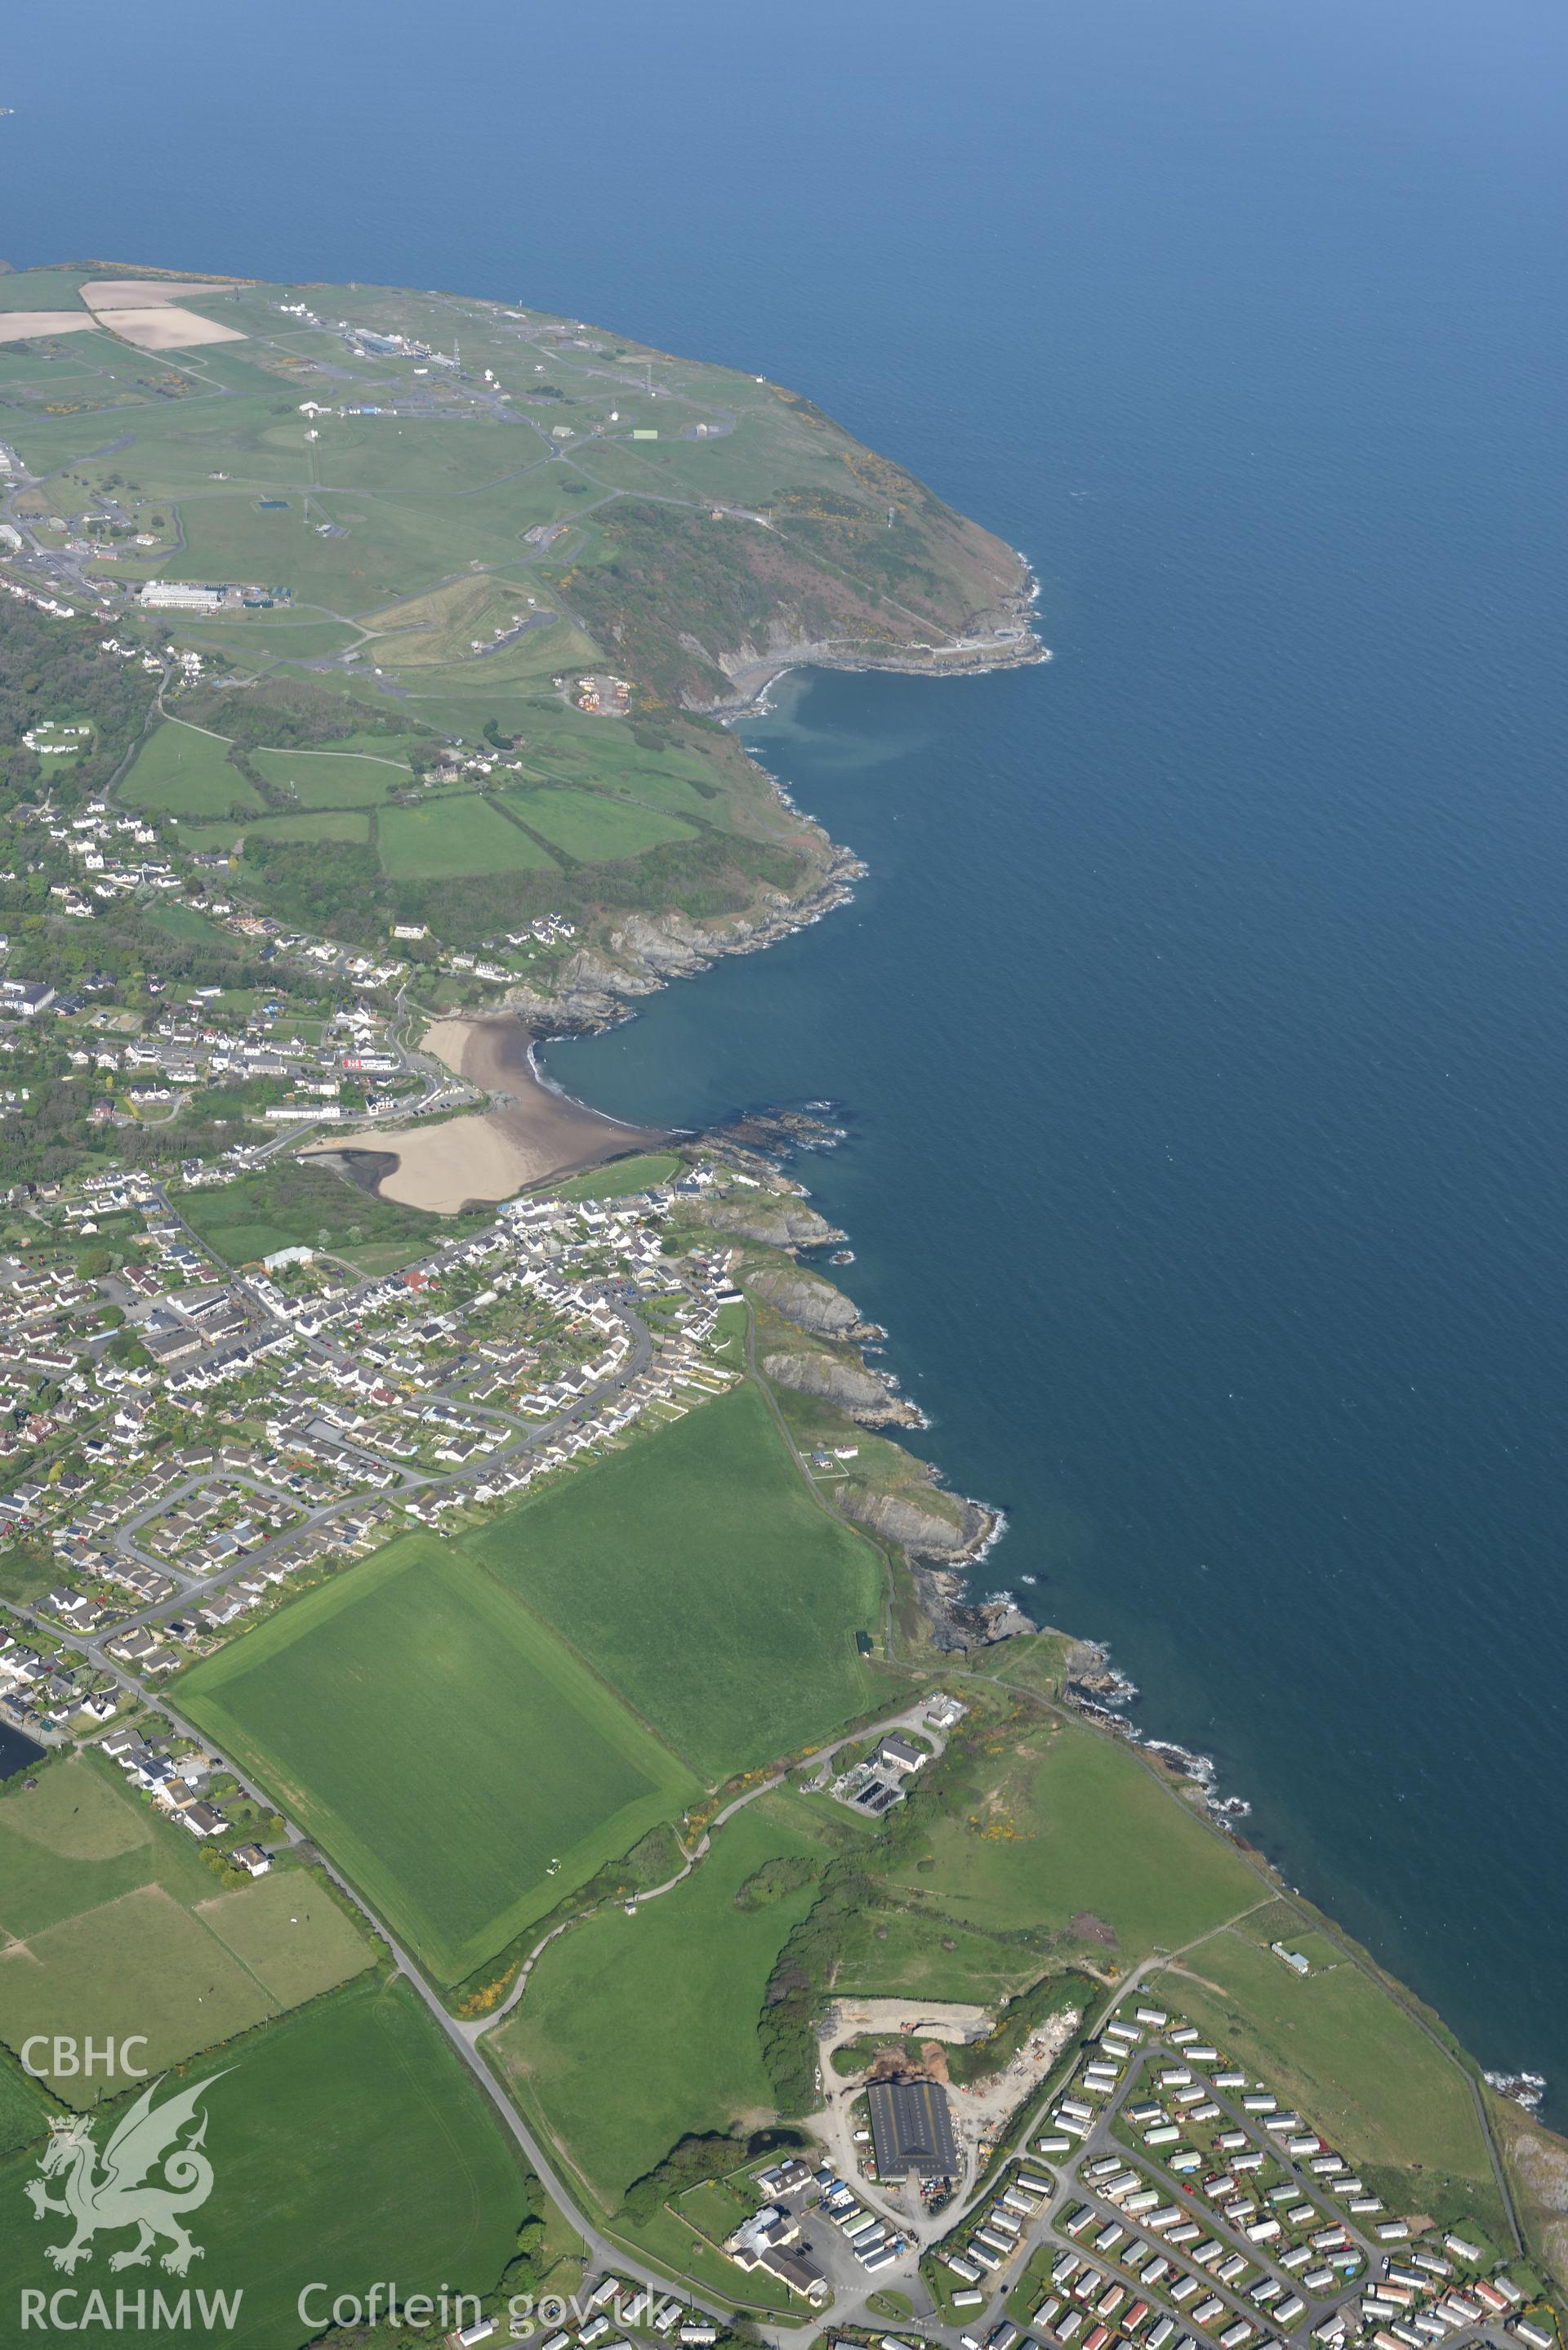 Aerial photography of Aberporth taken on 3rd May 2017.  Baseline aerial reconnaissance survey for the CHERISH Project. ? Crown: CHERISH PROJECT 2017. Produced with EU funds through the Ireland Wales Co-operation Programme 2014-2020. All material made fre